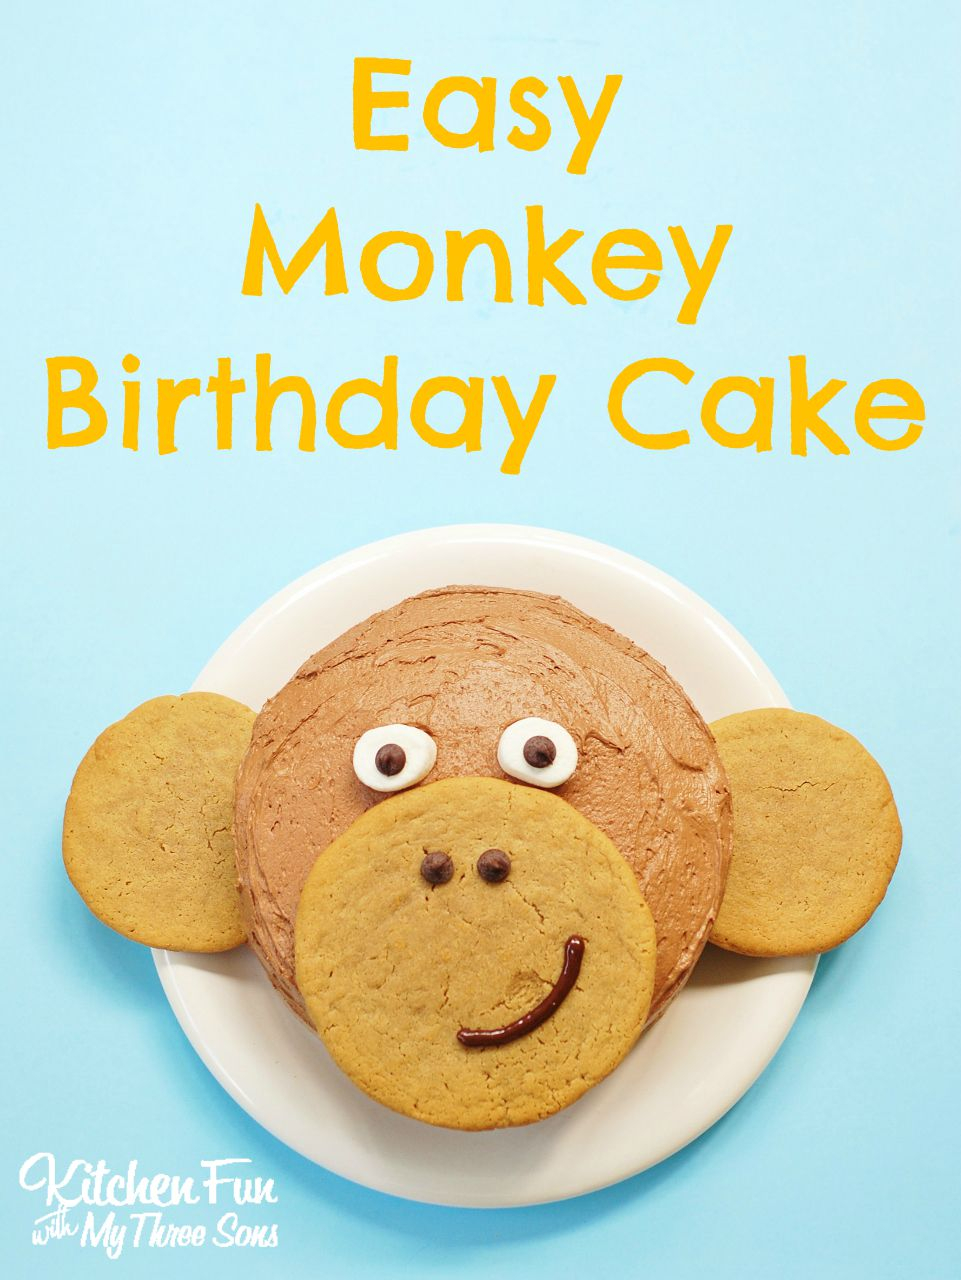 Monkey Birthday Cake Easy Monkey Birthday Cake Kitchen Fun With My 3 Sons